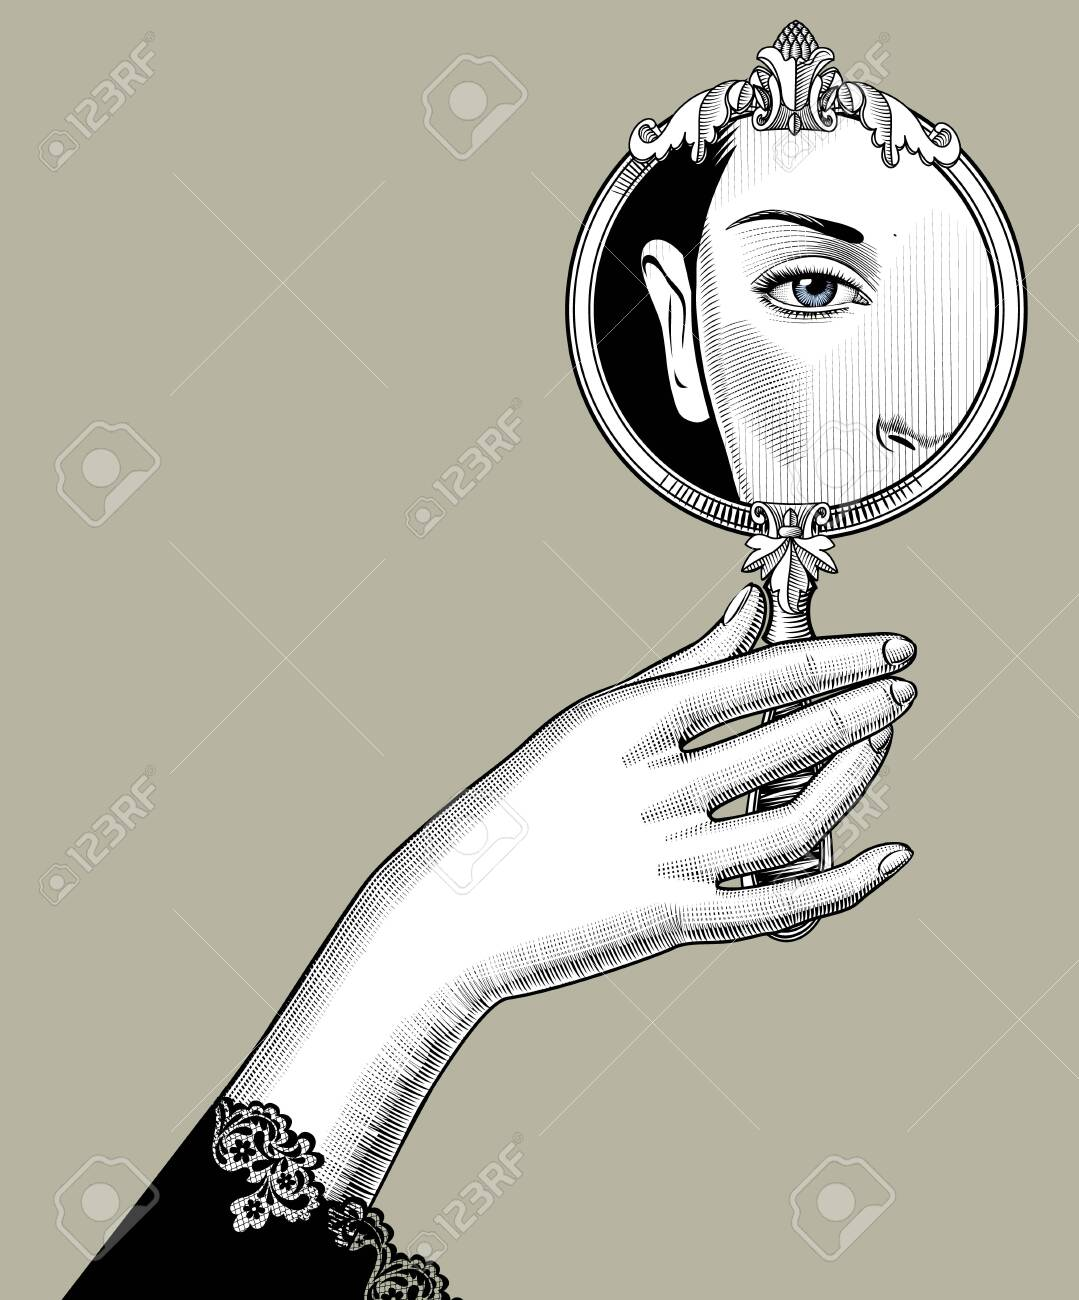 Female hand holding a round decorative mirror with an eye reflection. Vintage engraving stylized drawing. Vector illustration - 136830845